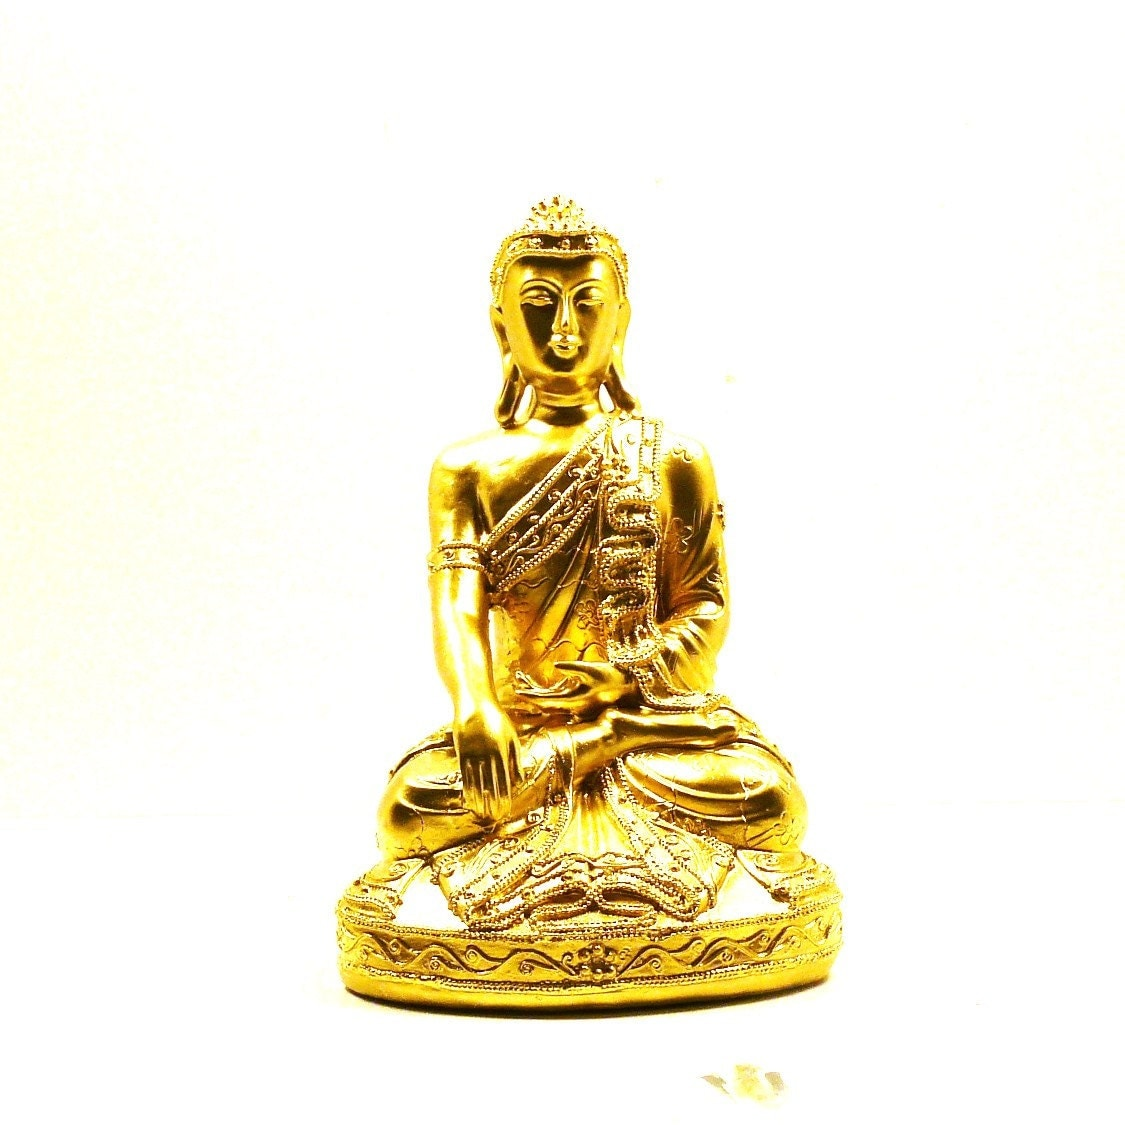 gold buddha statue thai home decor upcycled figurines by nashpop